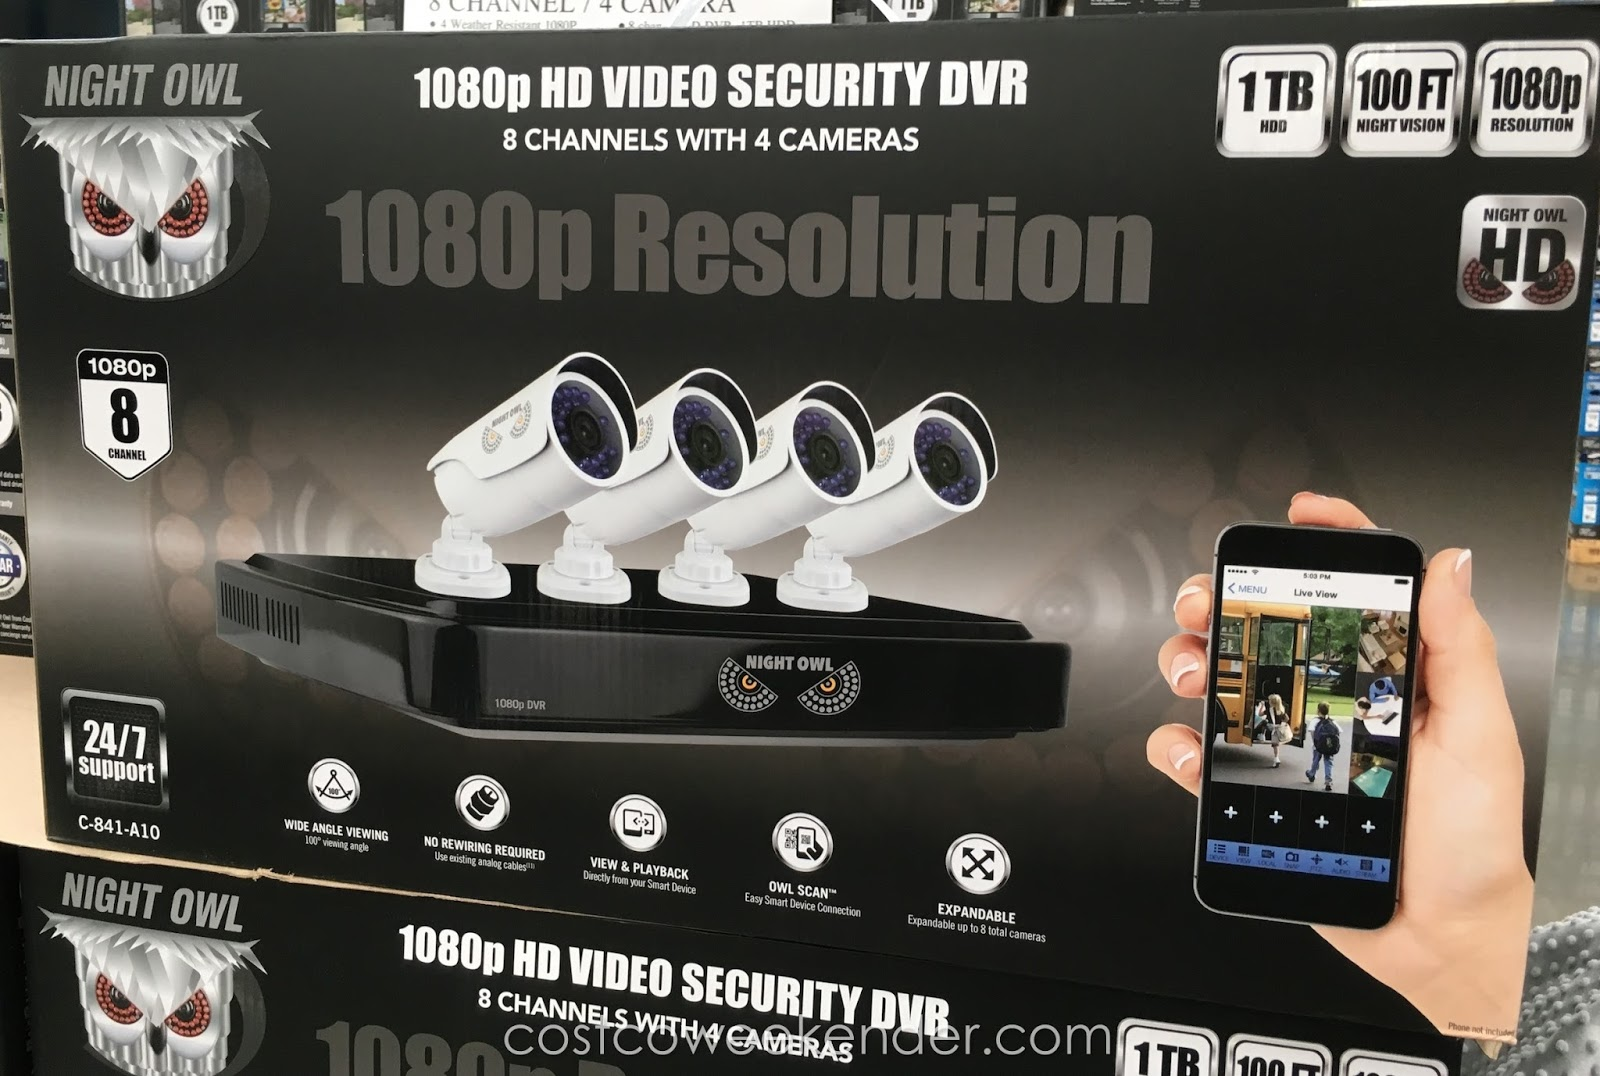 Camera Surveillance Exterieur Costco Night Owl C 841 A10 Hd Video Security System Costco